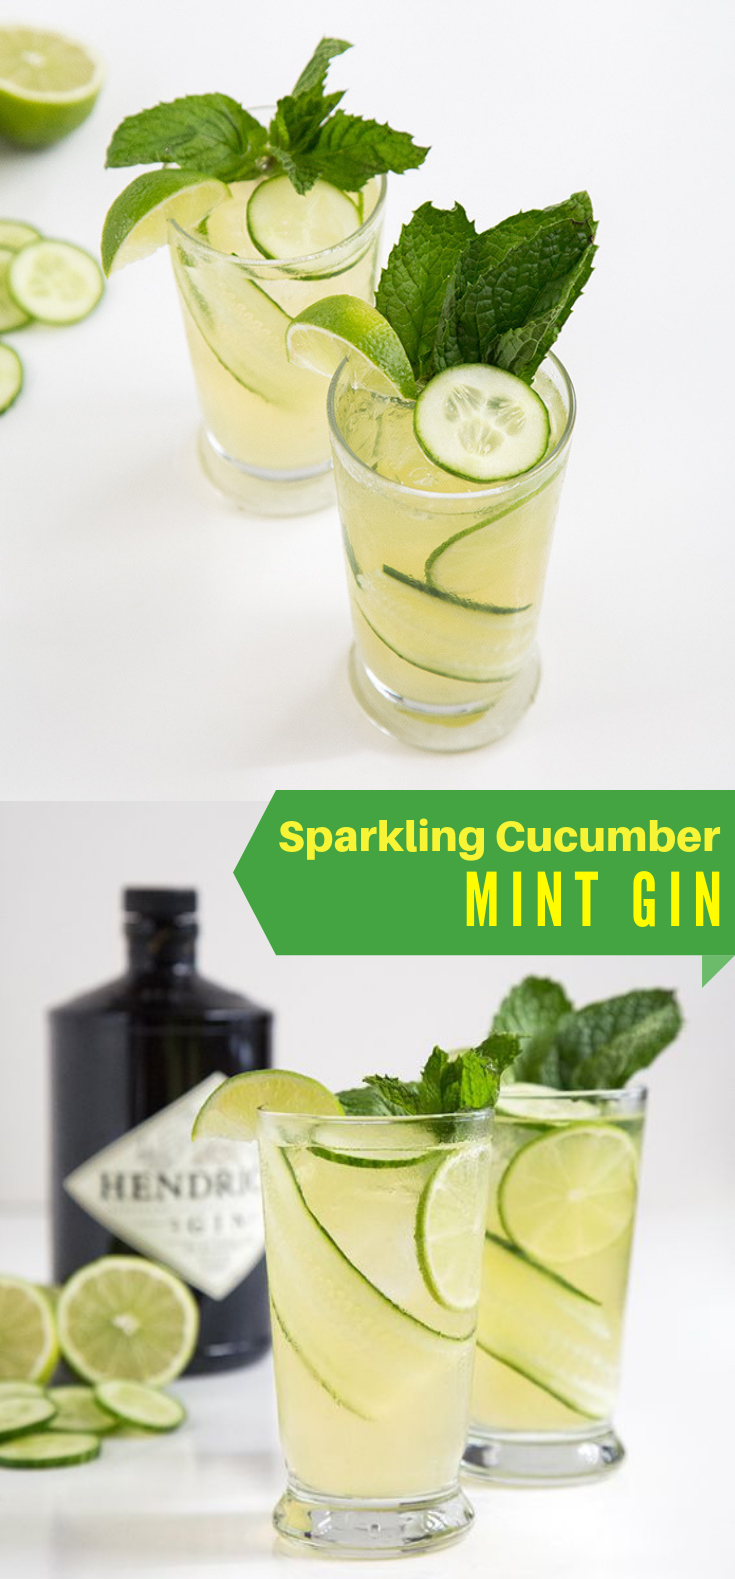 SPARKLING CUCUMBER MINT GIN #Drink #Cocktails